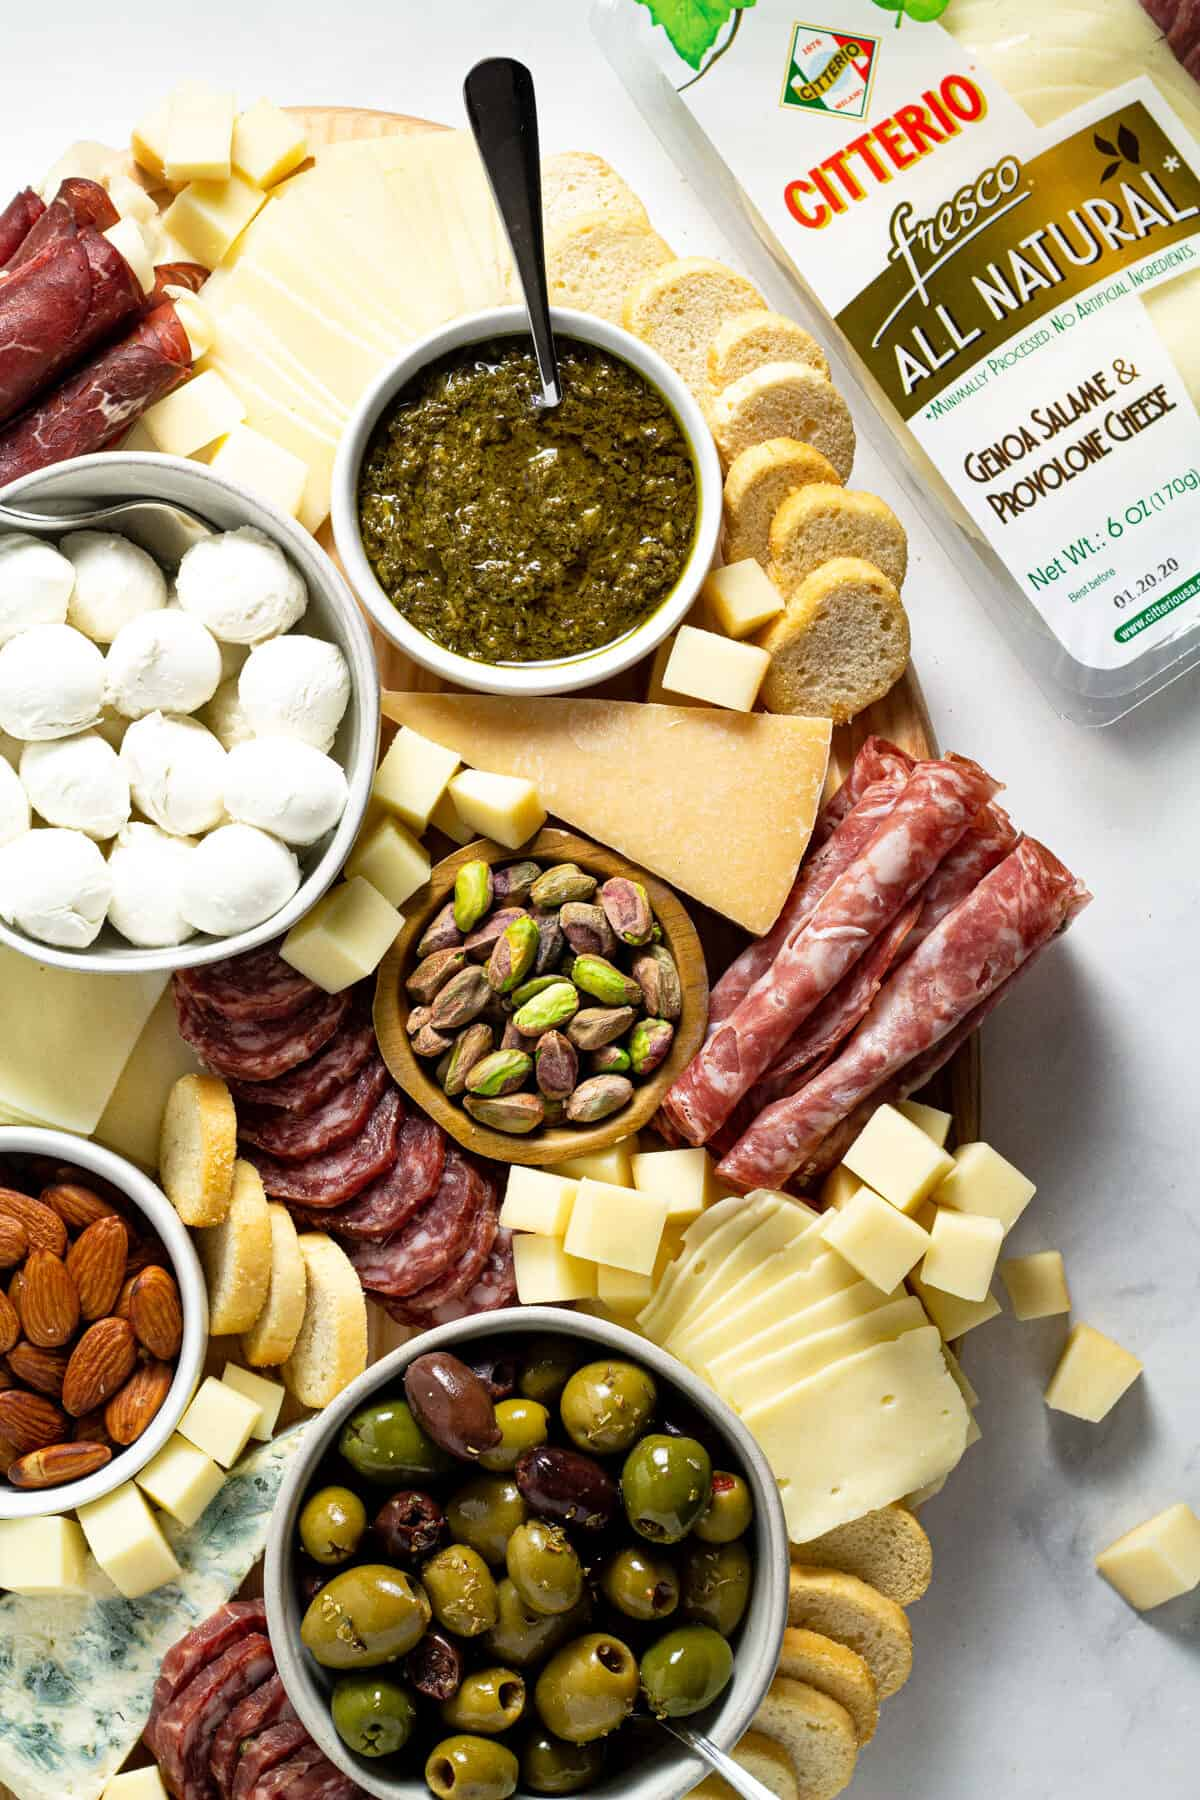 Overhead shot of a cheese board filled with a variety of meats cheeses and nuts